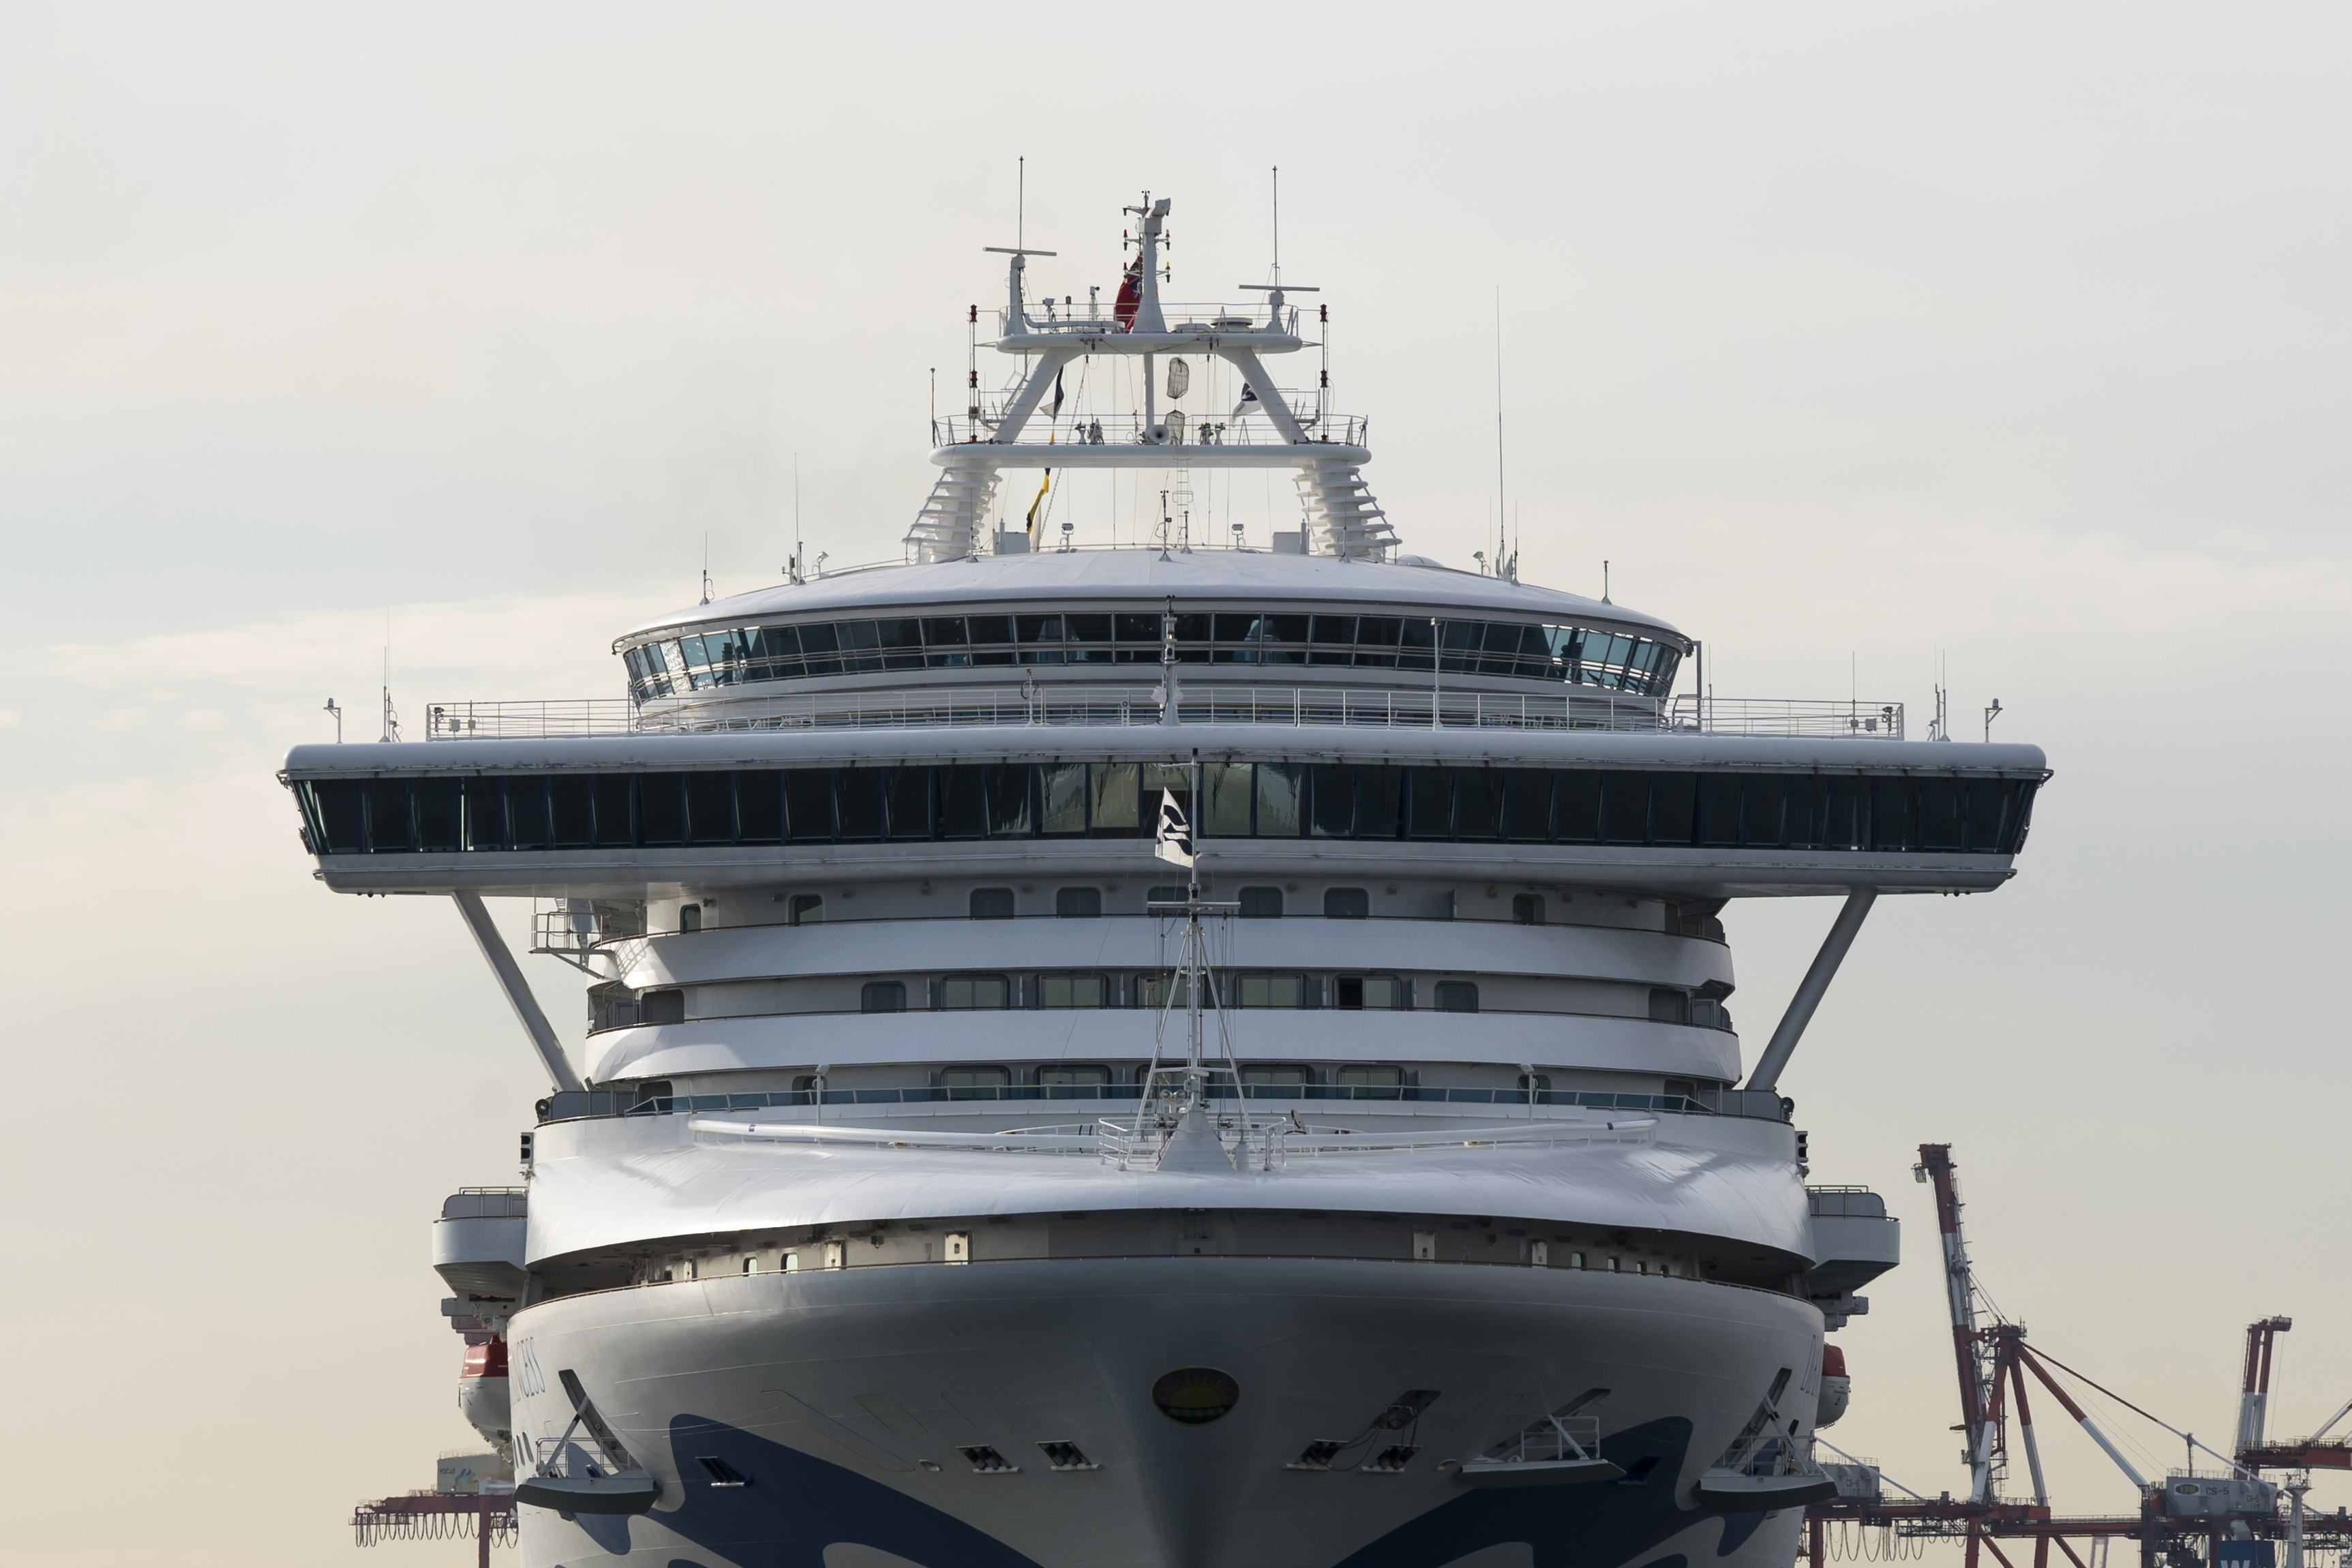 The Diamond Princess cruise ship at Daikoku Pier, Yokohama where it is being resupplied and newly diagnosed coronavirus cases taken for treatment as it remains in quarantine.